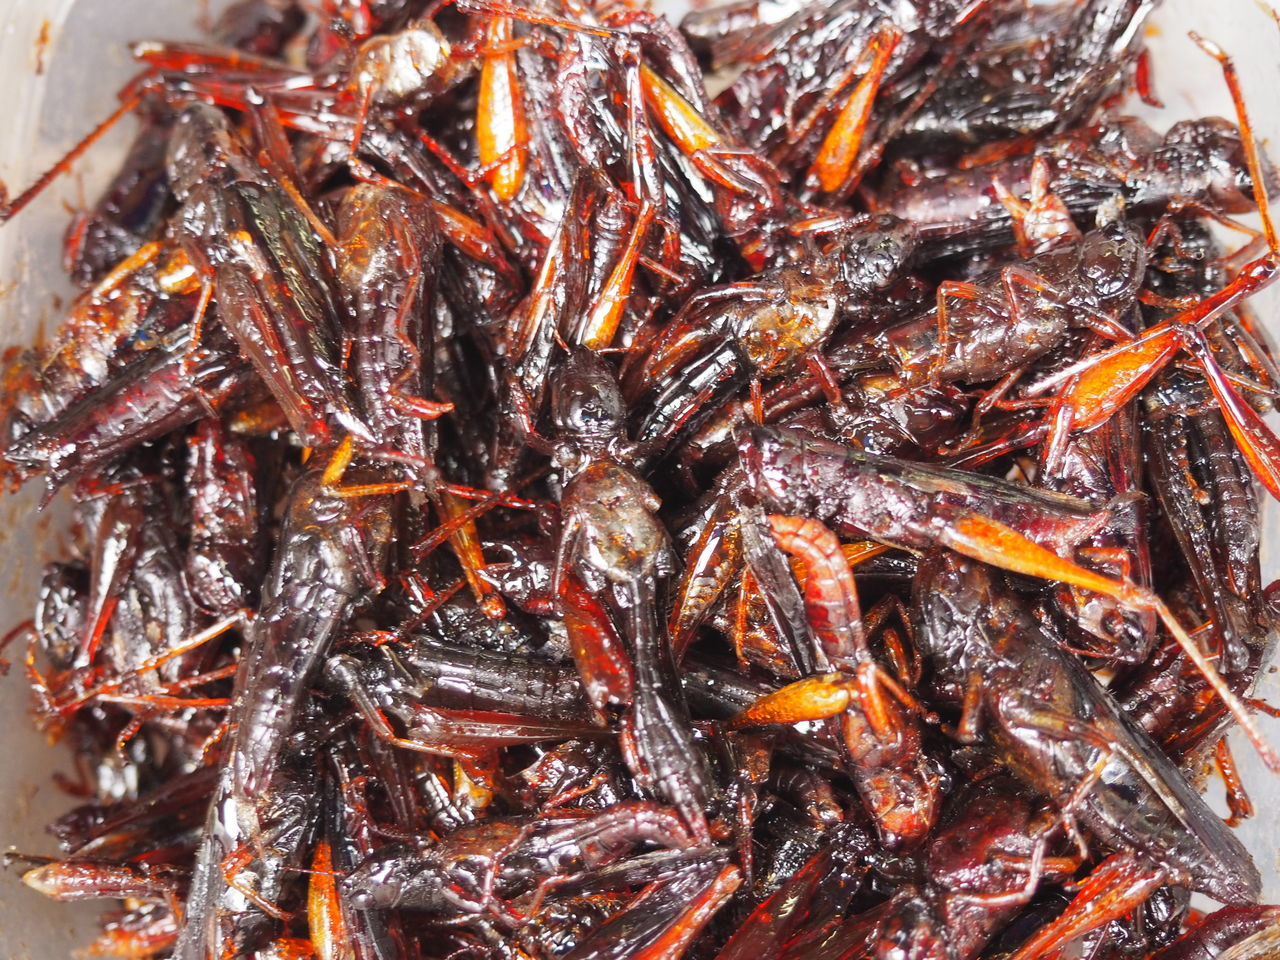 Animal Themes Backgrounds Candied Close-up Day Food Food And Drink Freshness Healthy Eating Healty Food High Angle View Indoors  Insect Food Insects  Japanese Food Large Group Of Animals No People Protein Ready-to-eat Sweet